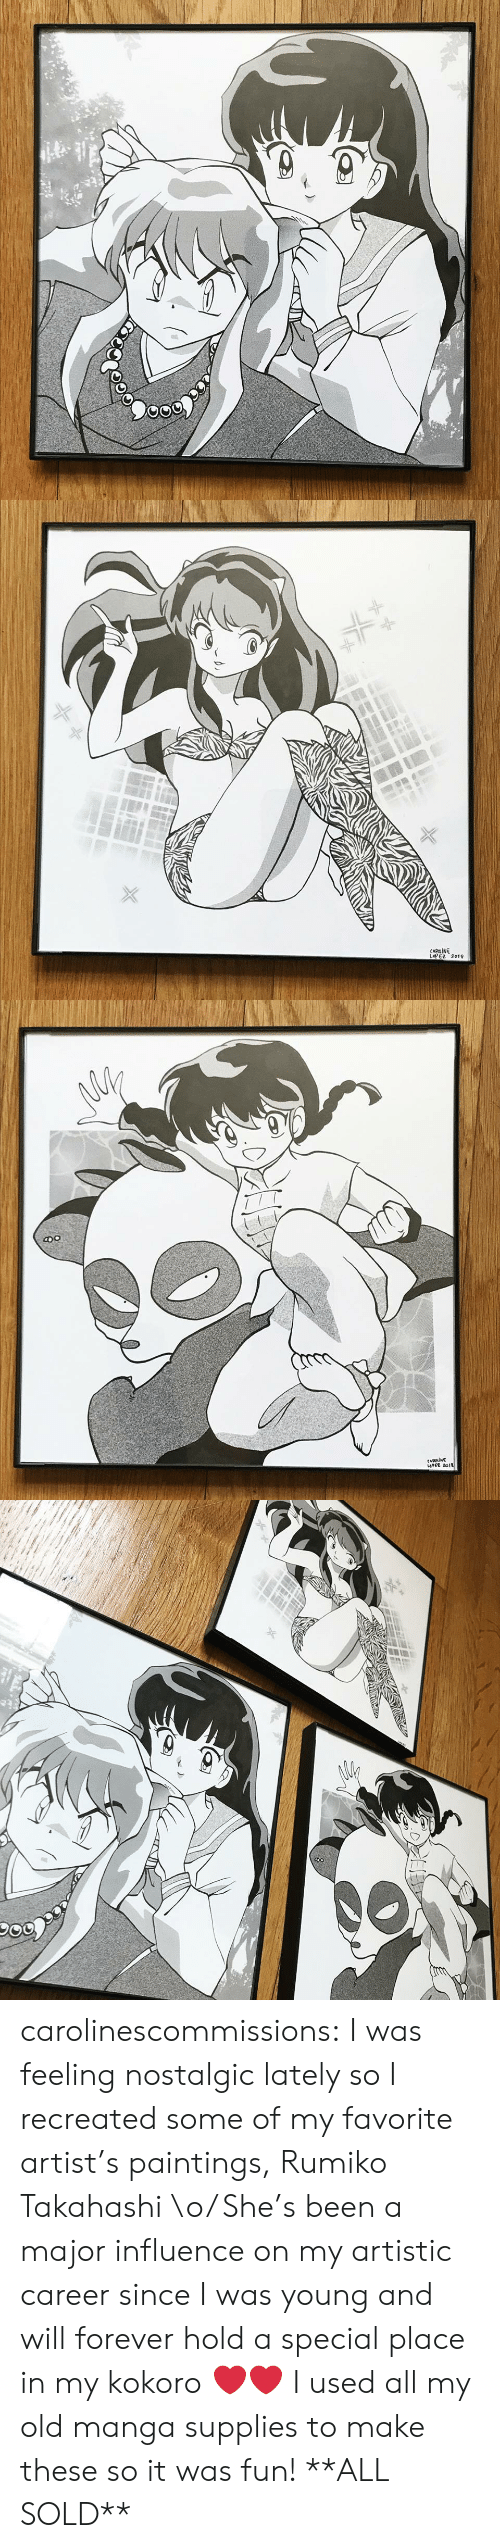 artistic: CAROLINE  LoPE2 201 carolinescommissions: I was feeling nostalgic lately so I recreated some  of my favorite artist's paintings, Rumiko Takahashi \o/ She's been a  major influence on my artistic career since I was young and will forever  hold a special place in my kokoro ❤️❤️ I used all my old manga supplies to make these so it was fun! **ALL SOLD**